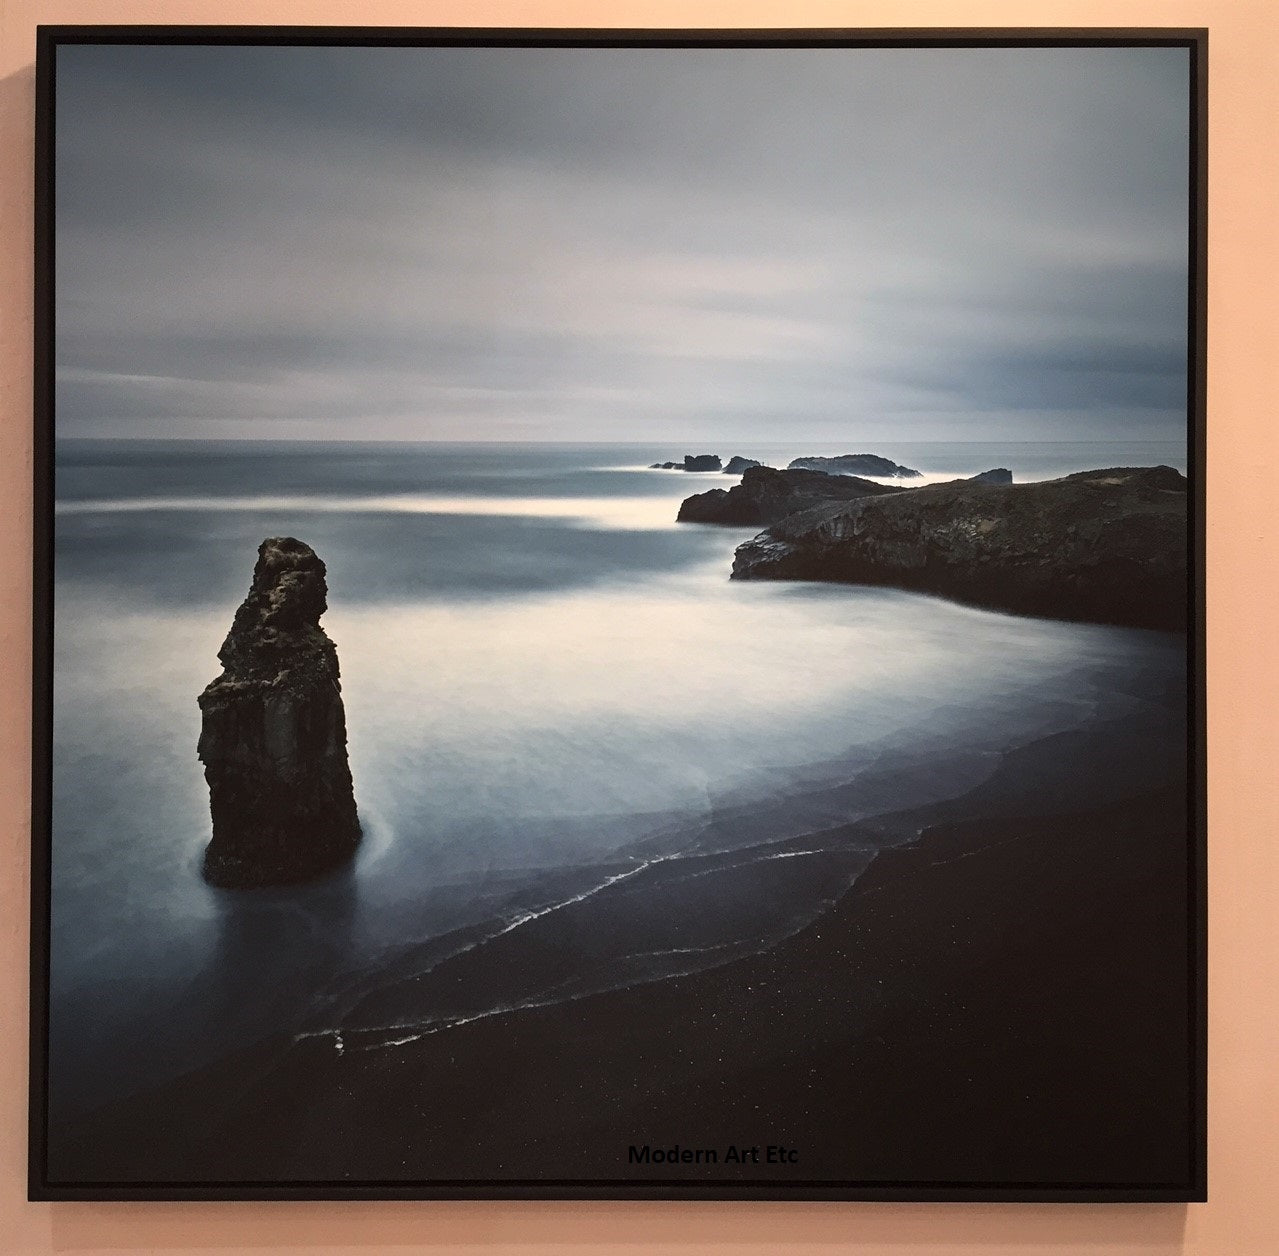 Seascapes photography - Ocean, Nature study I - large framed photograph